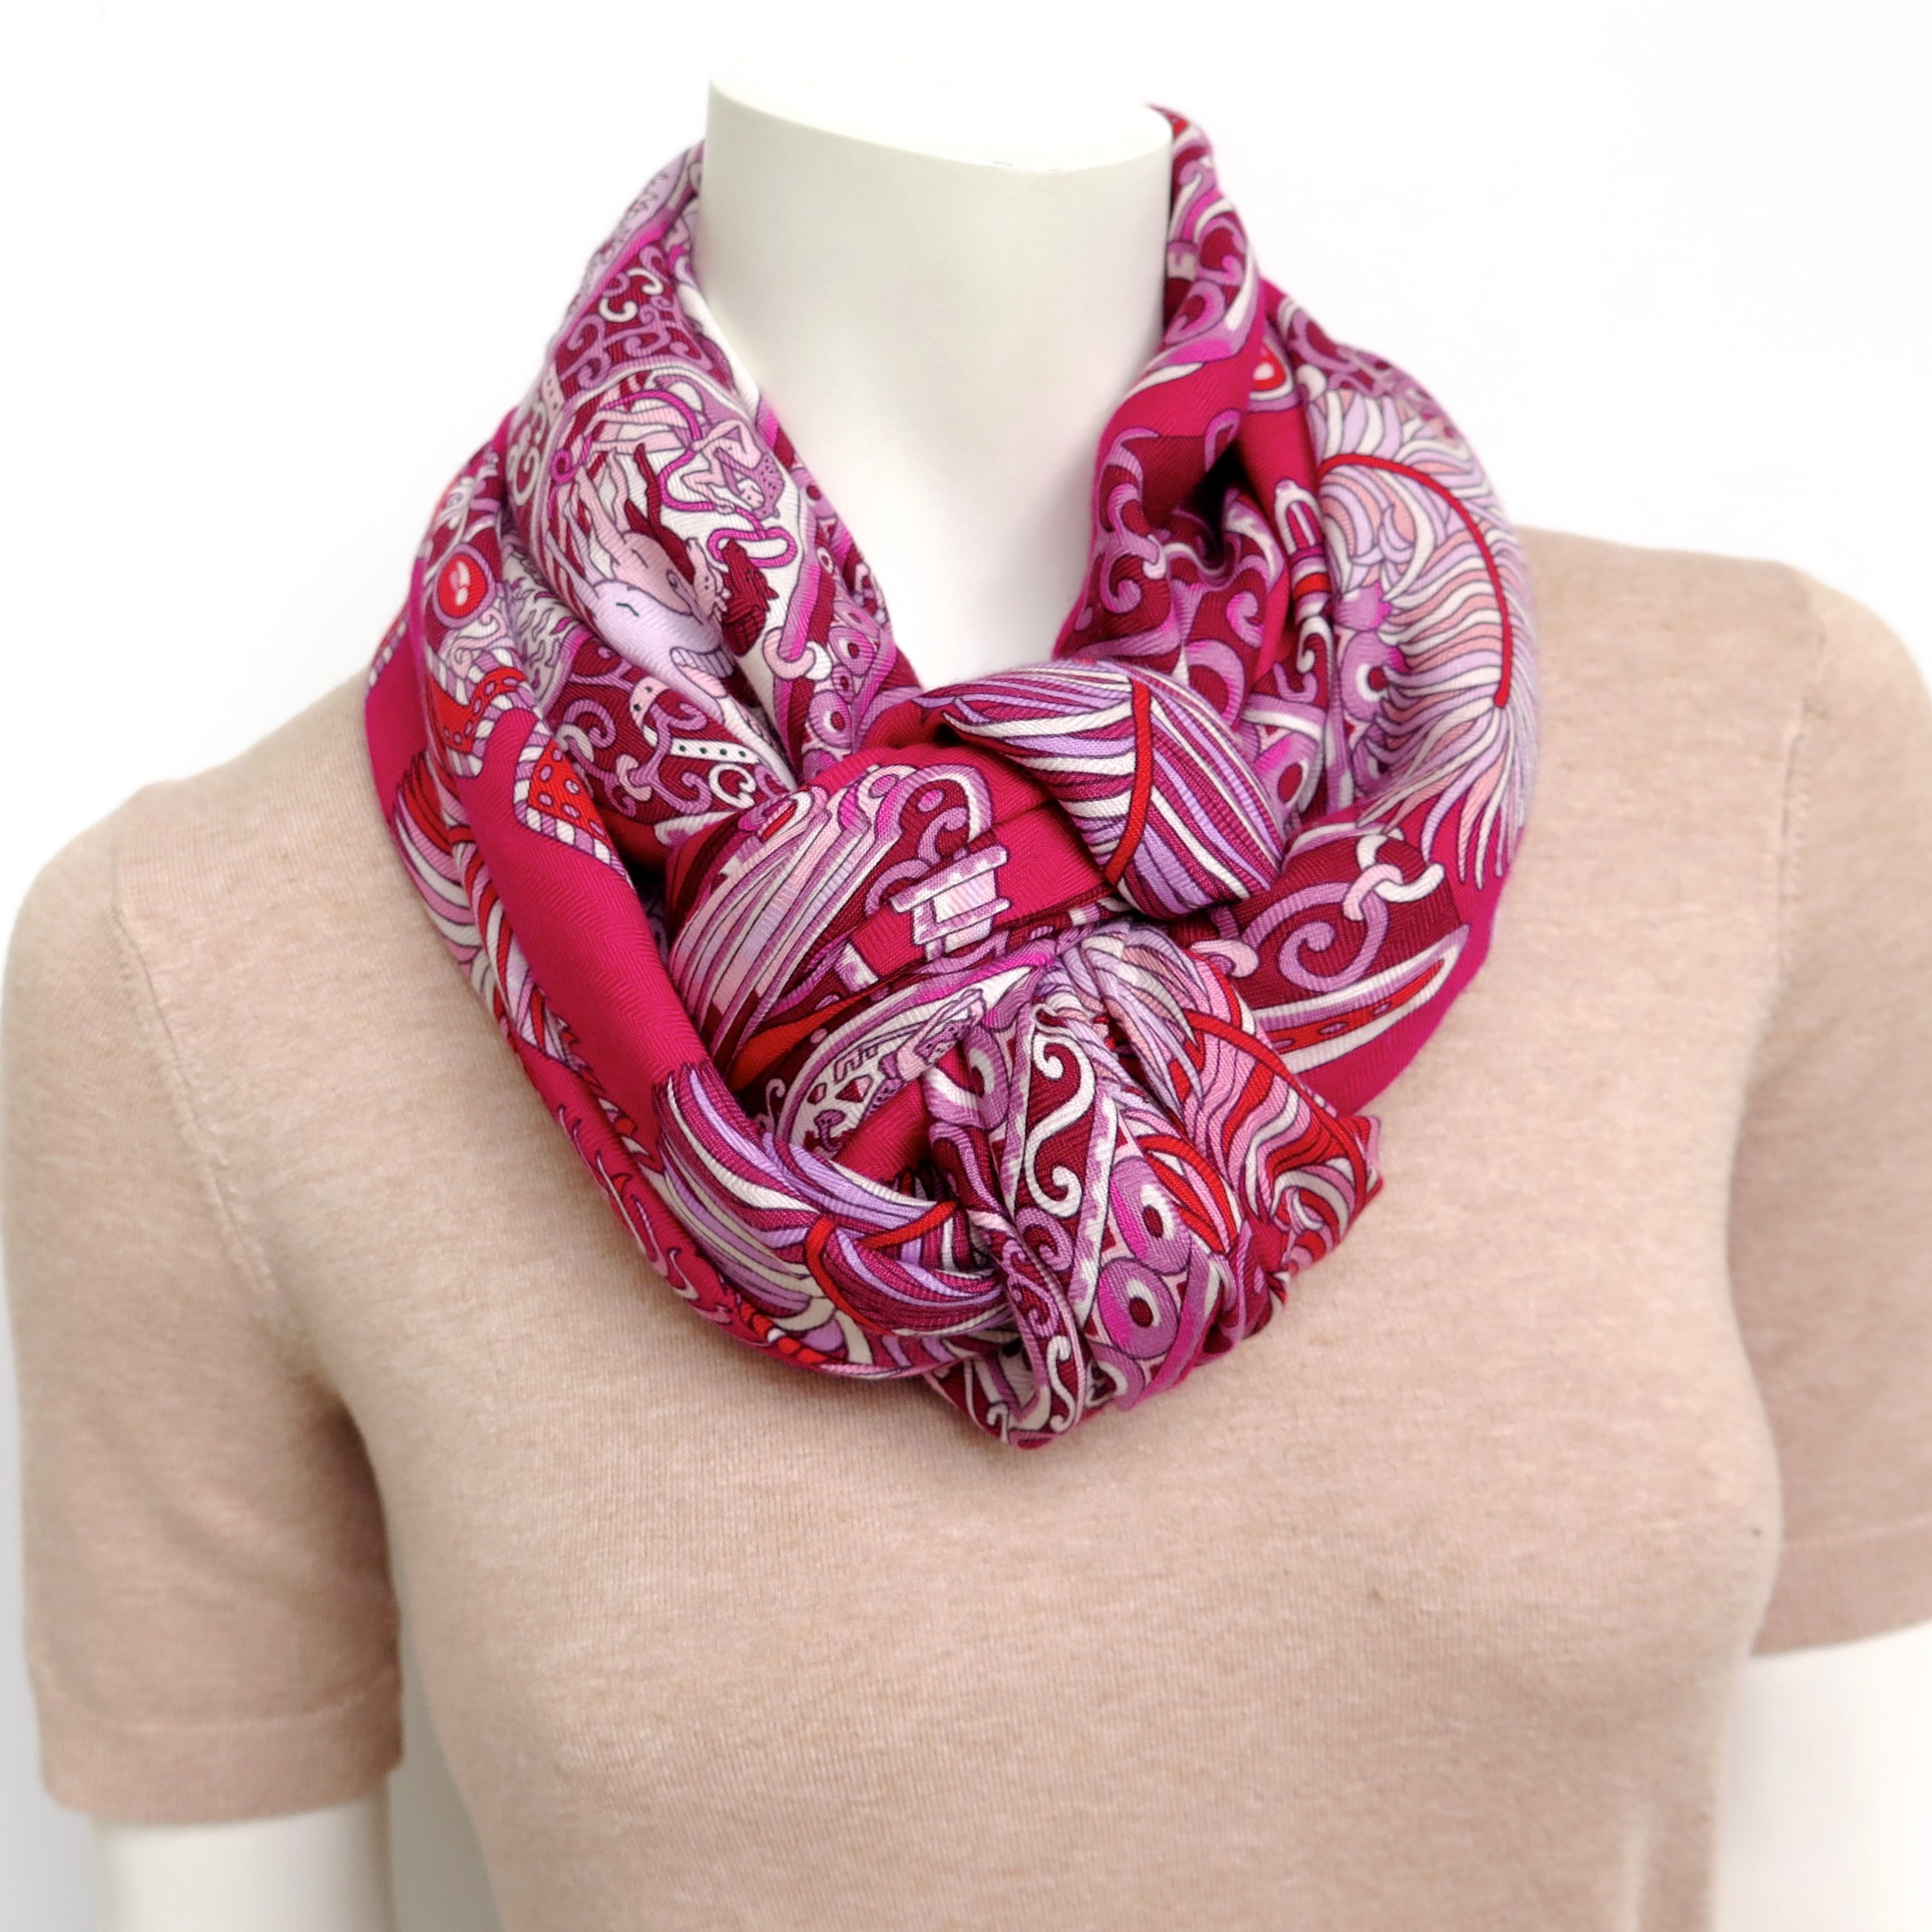 Heart knot in 2020 Heart knot, Scarf, Cashmere shawl